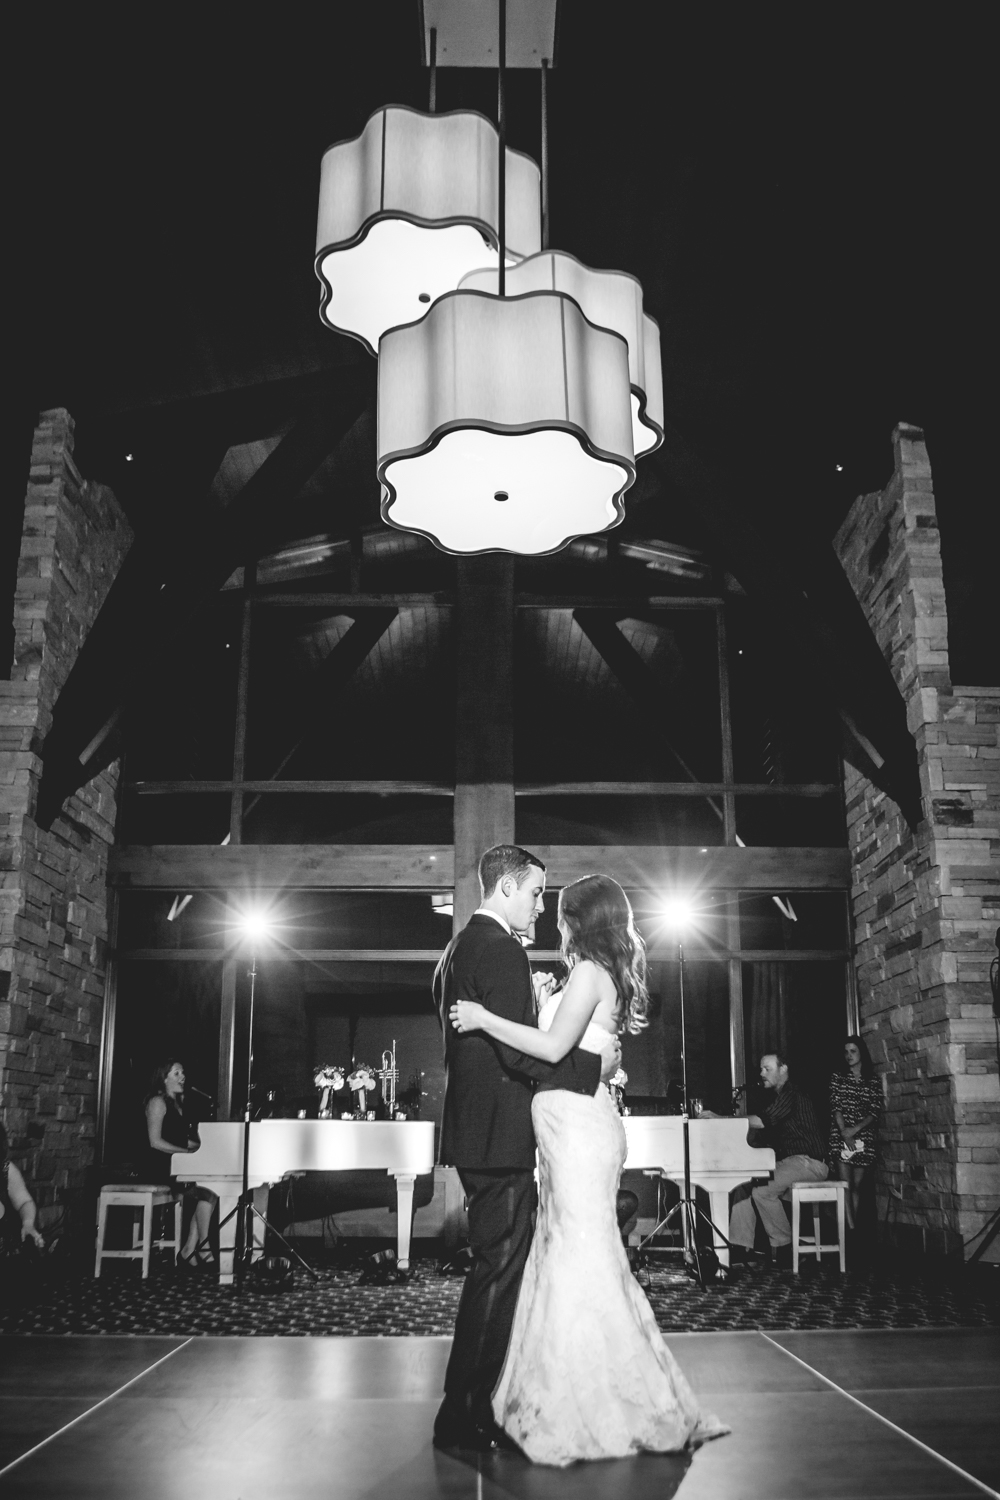 The first dance.Vail Colorado Wedding photographed by JMGant Photography.